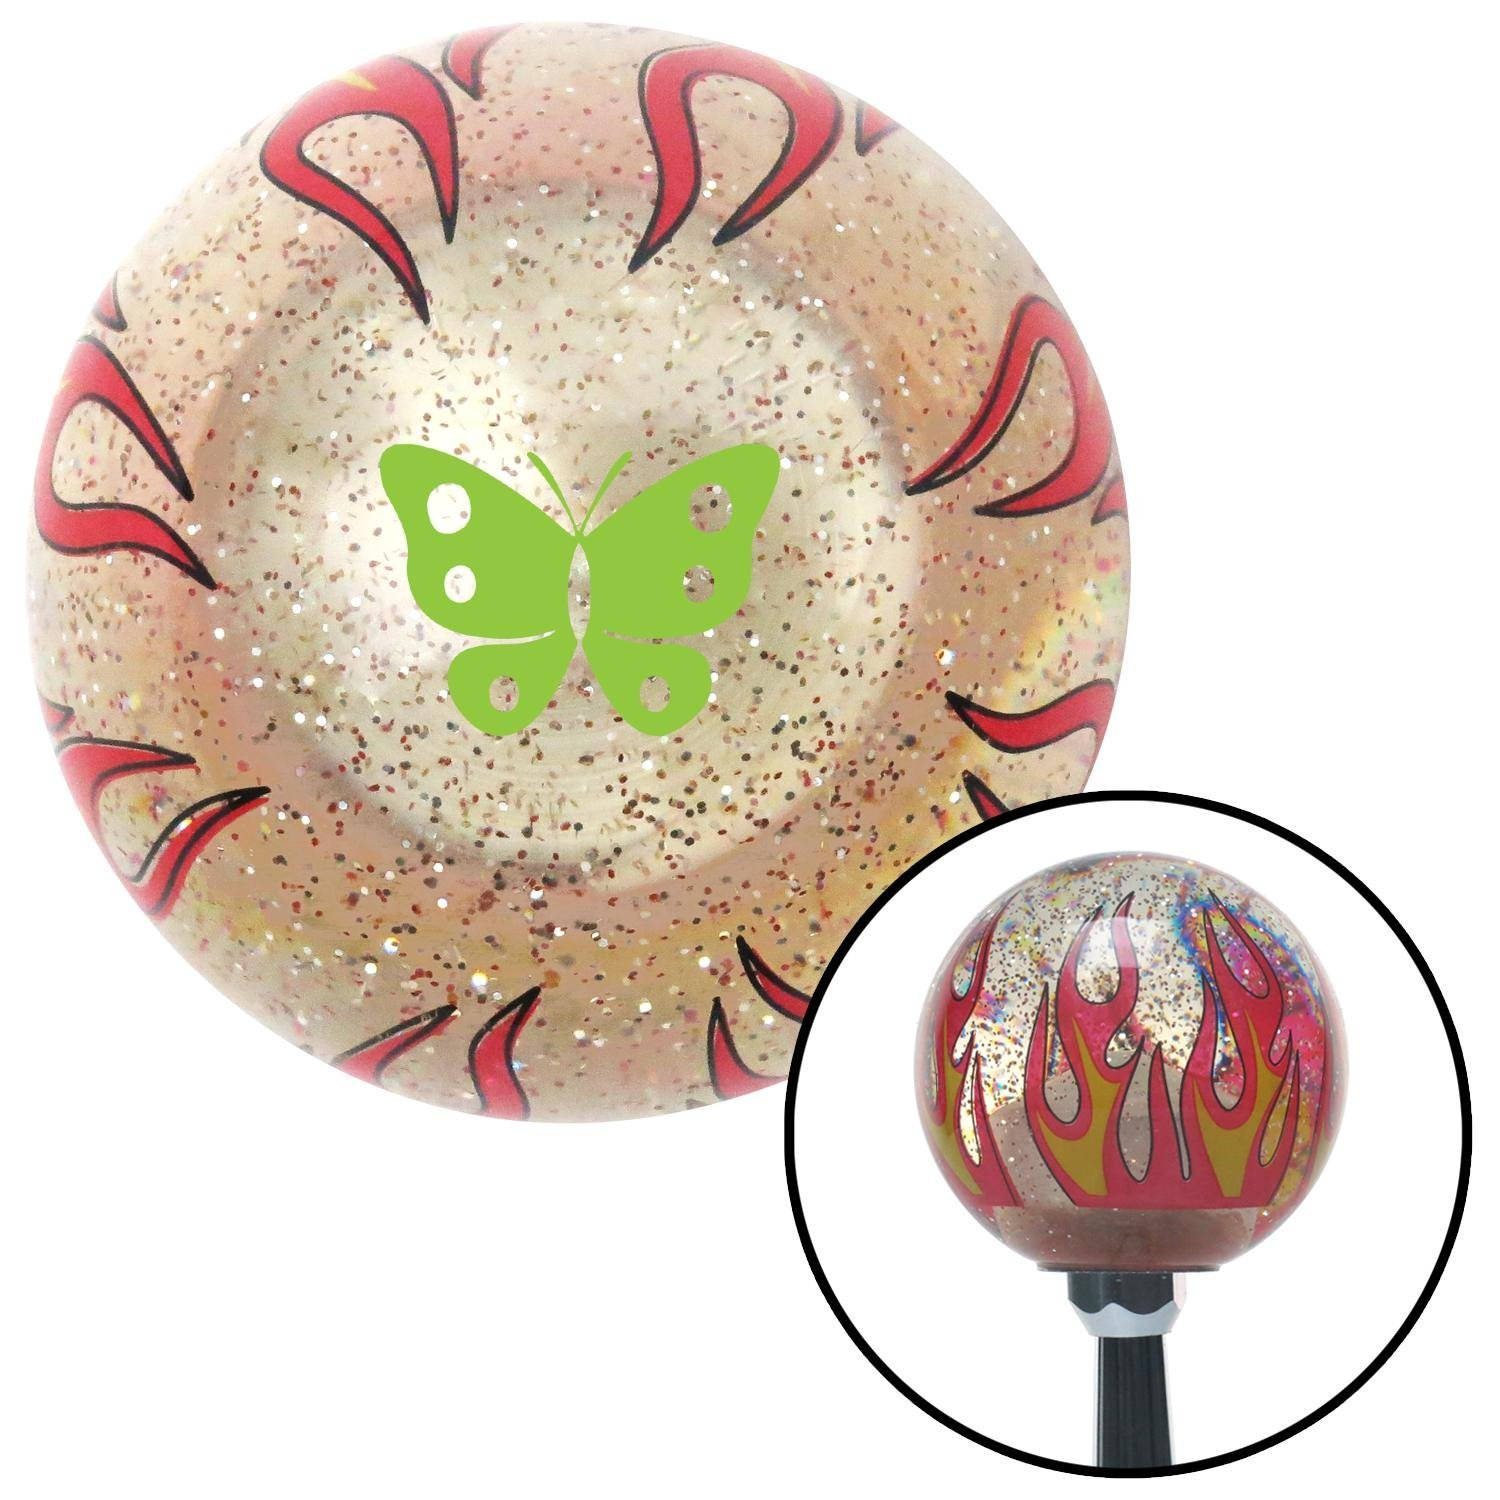 White I 3 My Engine American Shifter 194639 Red Retro Metal Flake Shift Knob with M16 x 1.5 Insert